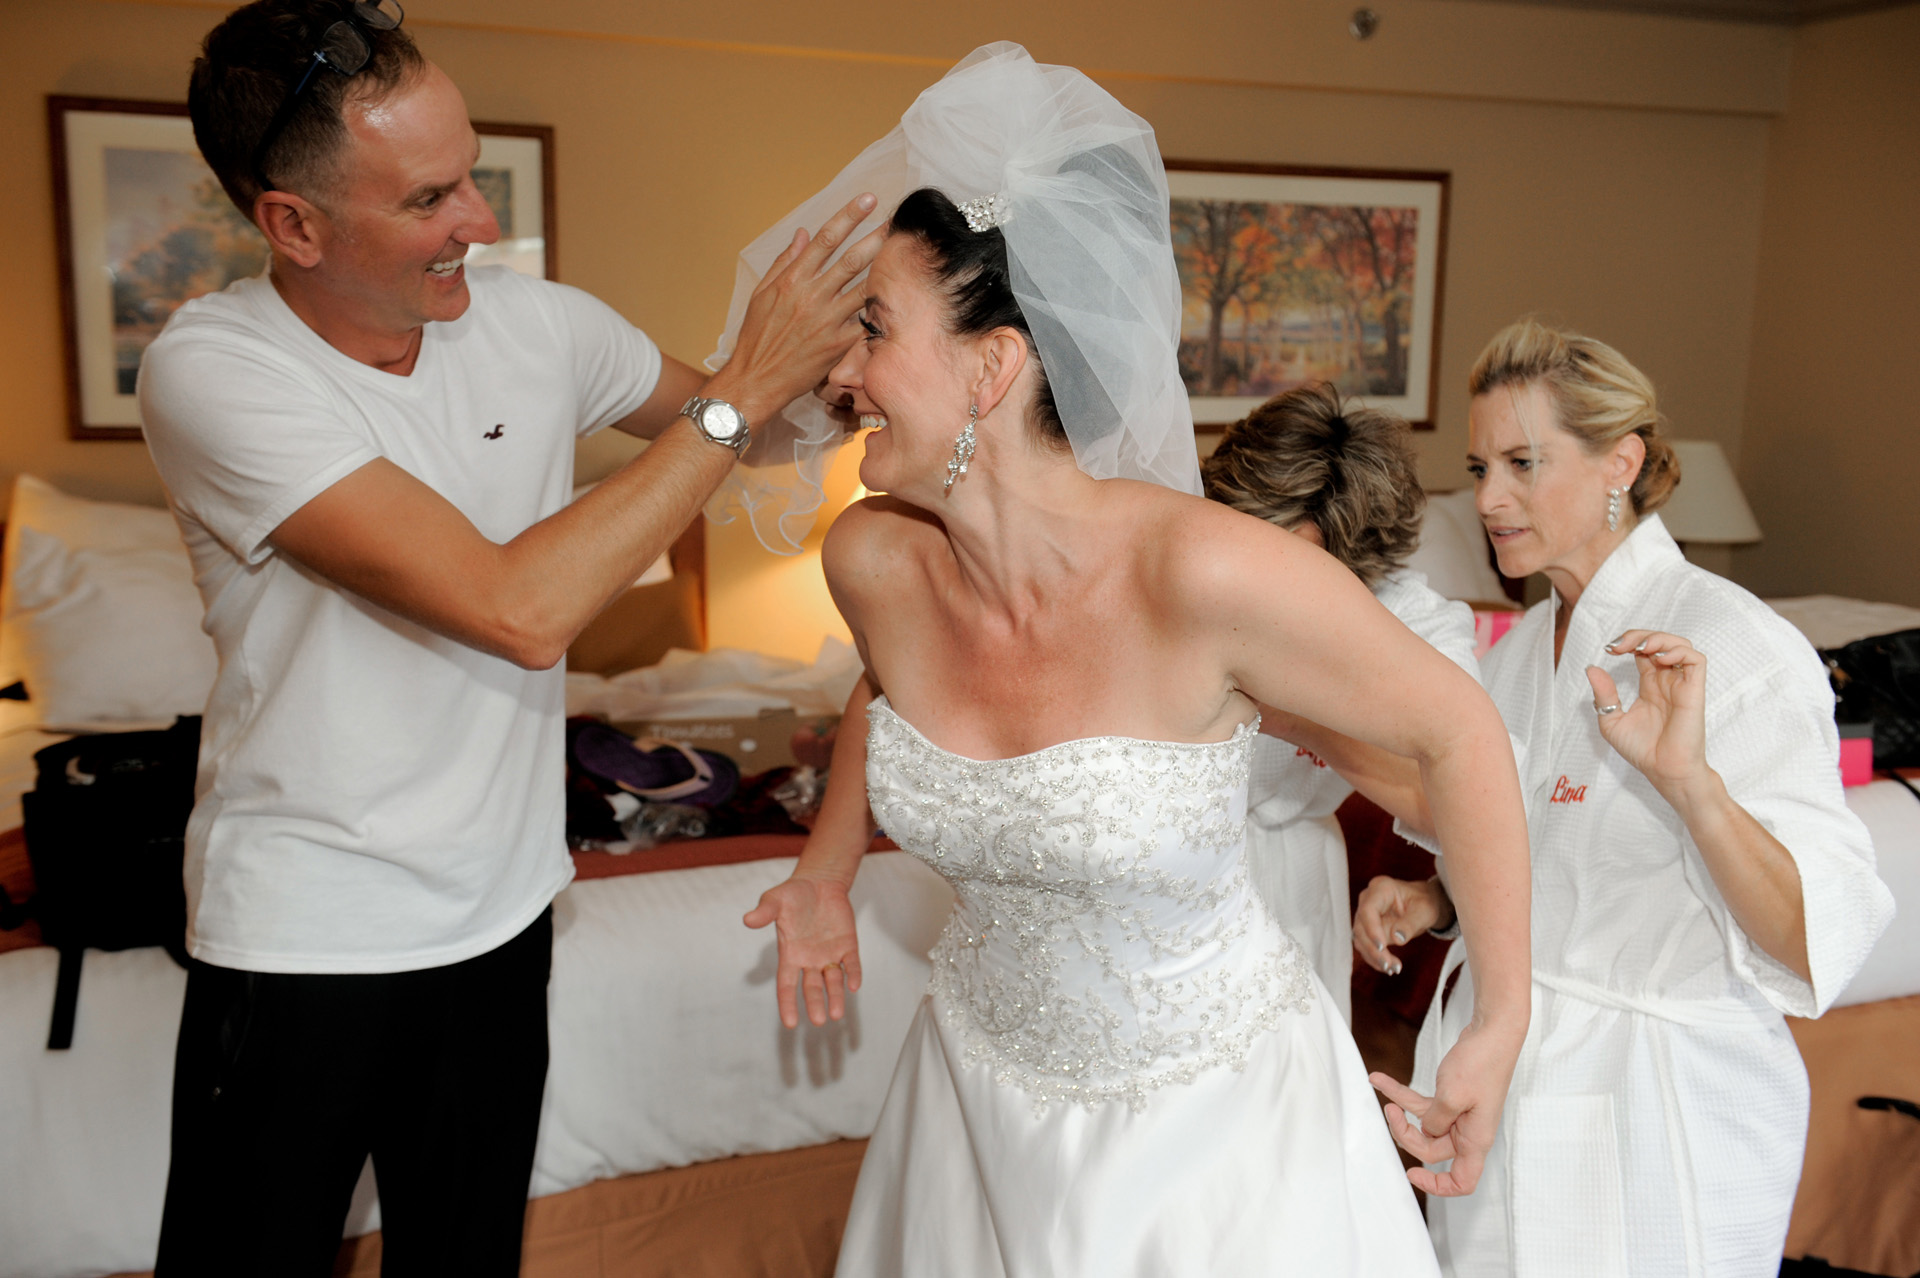 A family oriented wedding in Michigan showcases Michigan wedding photographer's photograph of the bride getting dressed with her Man of honor at her wedding at Wyndham Garden Hotel in Sterling Heights, Michigan (formerly known as the Sterling Inn).